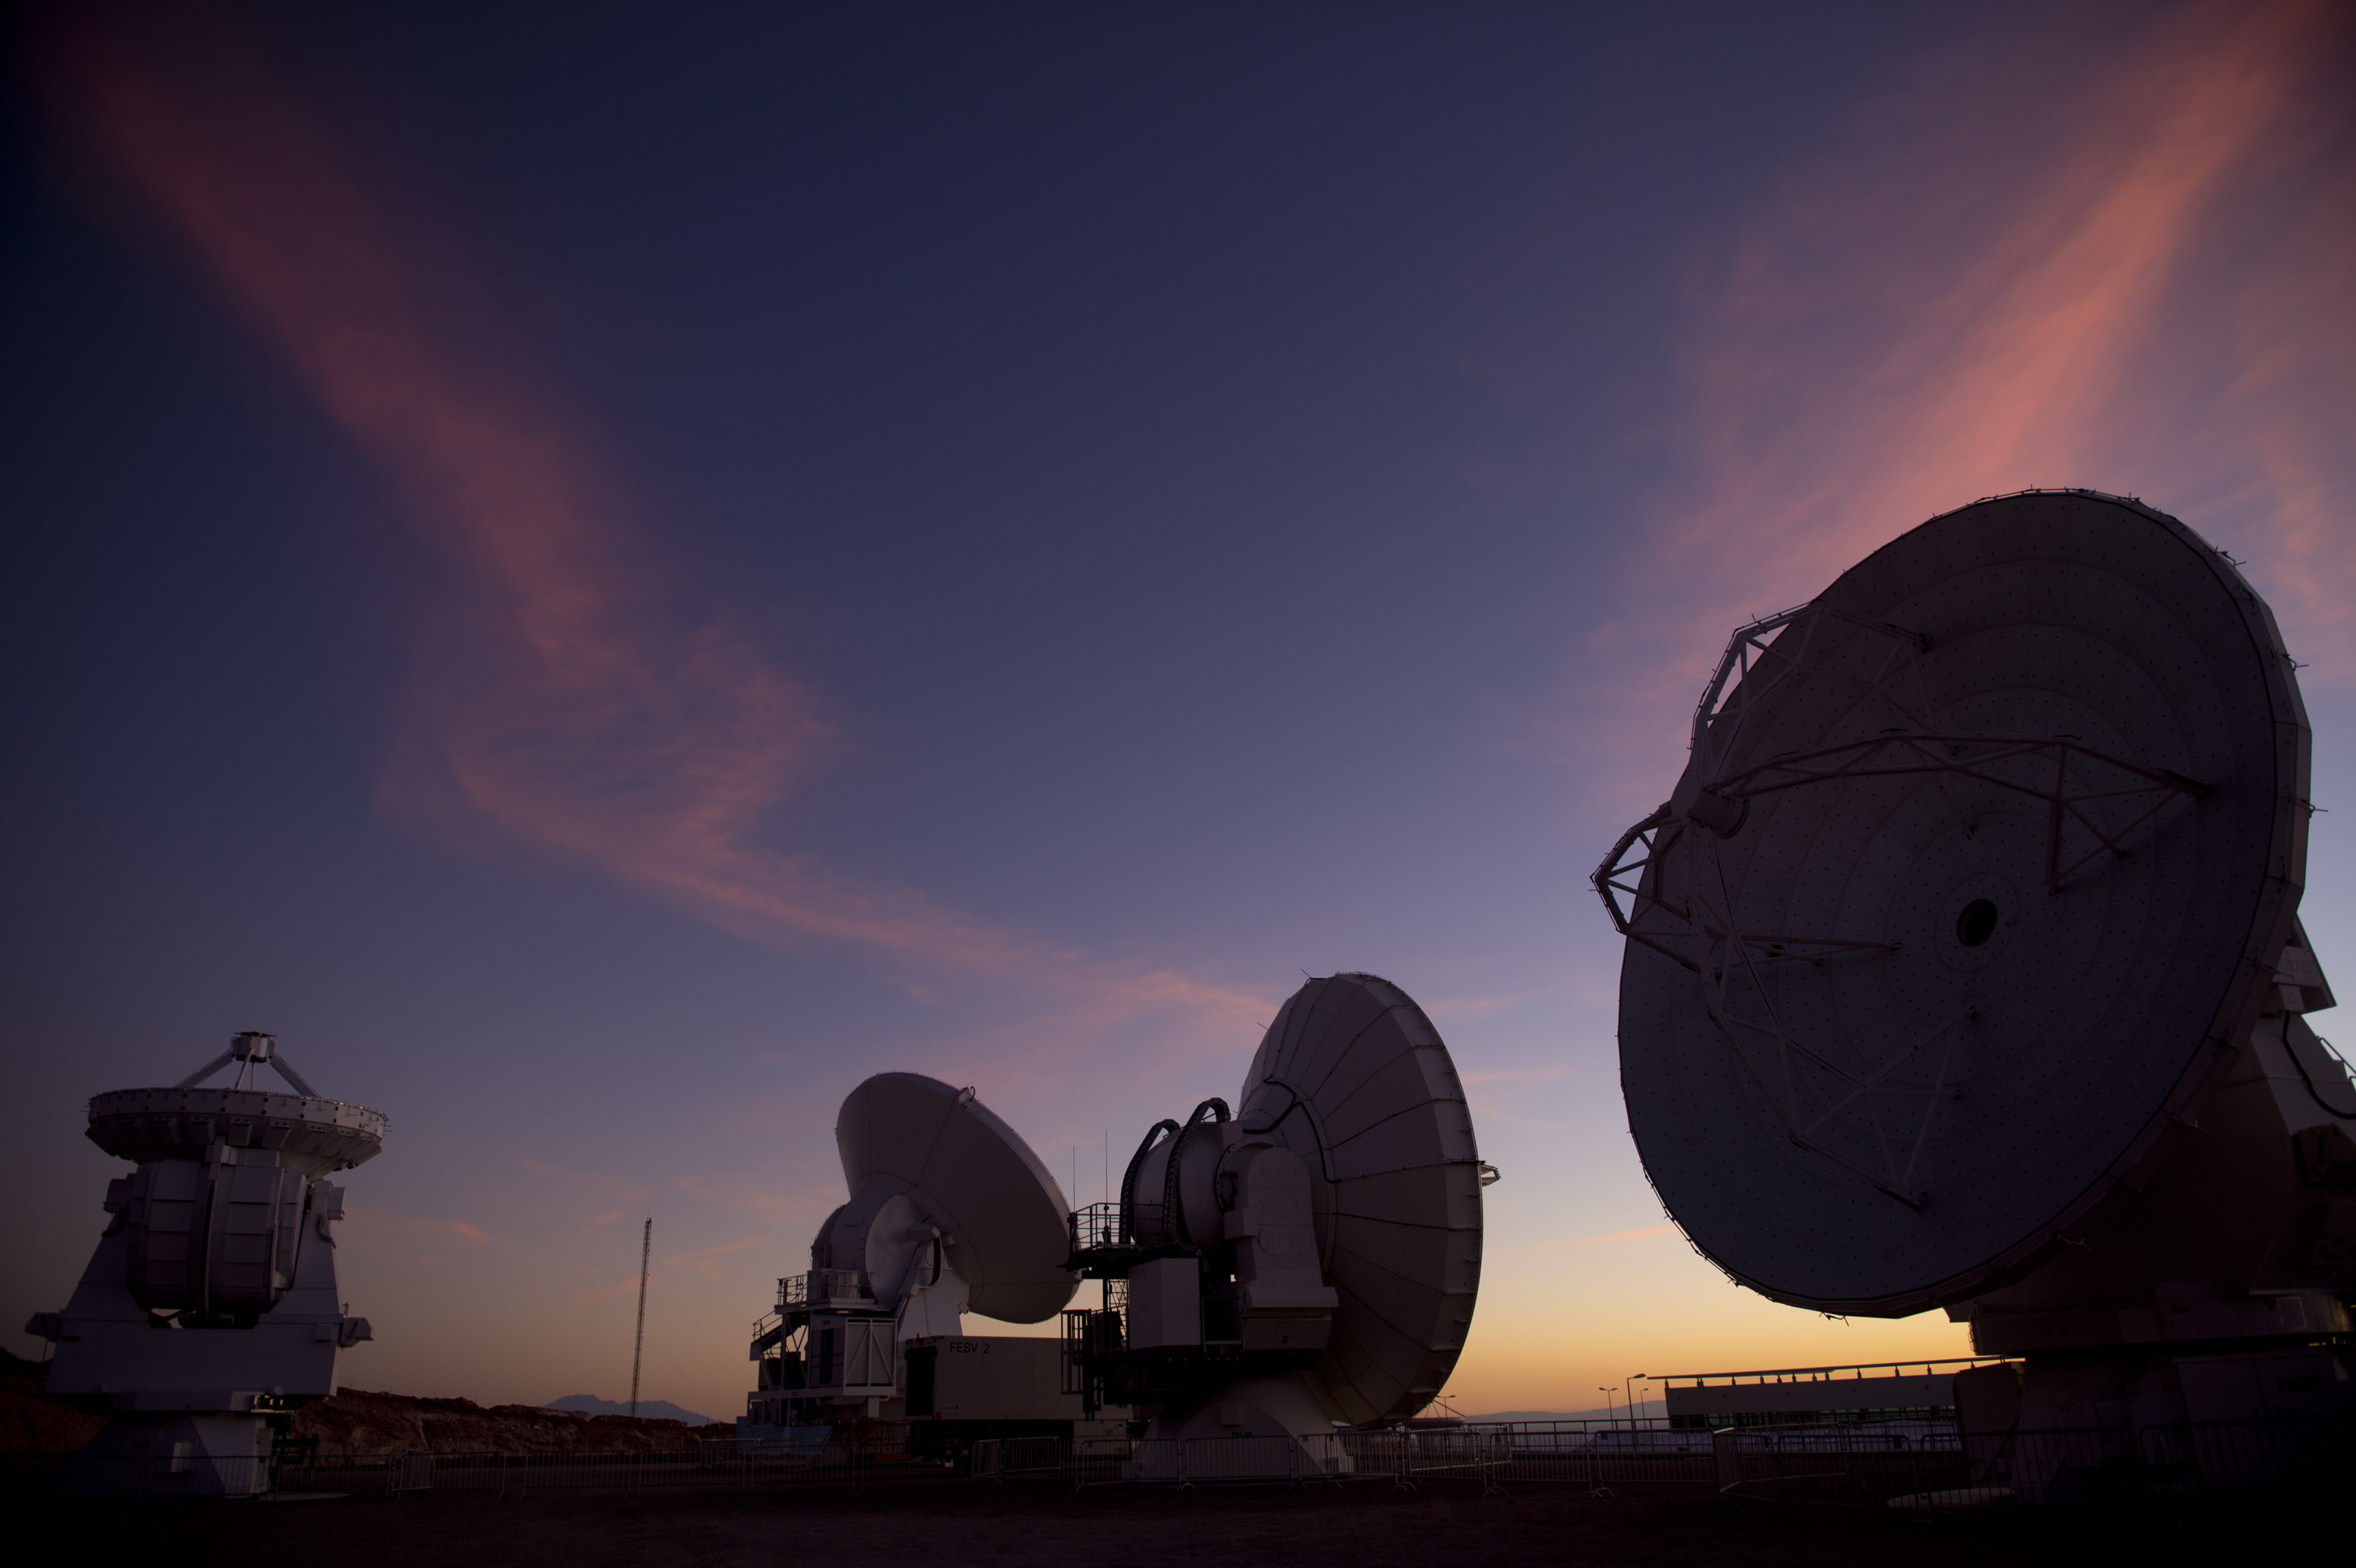 Radio telescope antennas of the ALMA ( Atacama Large Millimeter/submillimeter Array) project are seen in the Chajnantor plateau, Atacama desert, some 1500 km north of Santiago, on March 12,2013. (MARTIN BERNETTI/AFP/Getty Images)